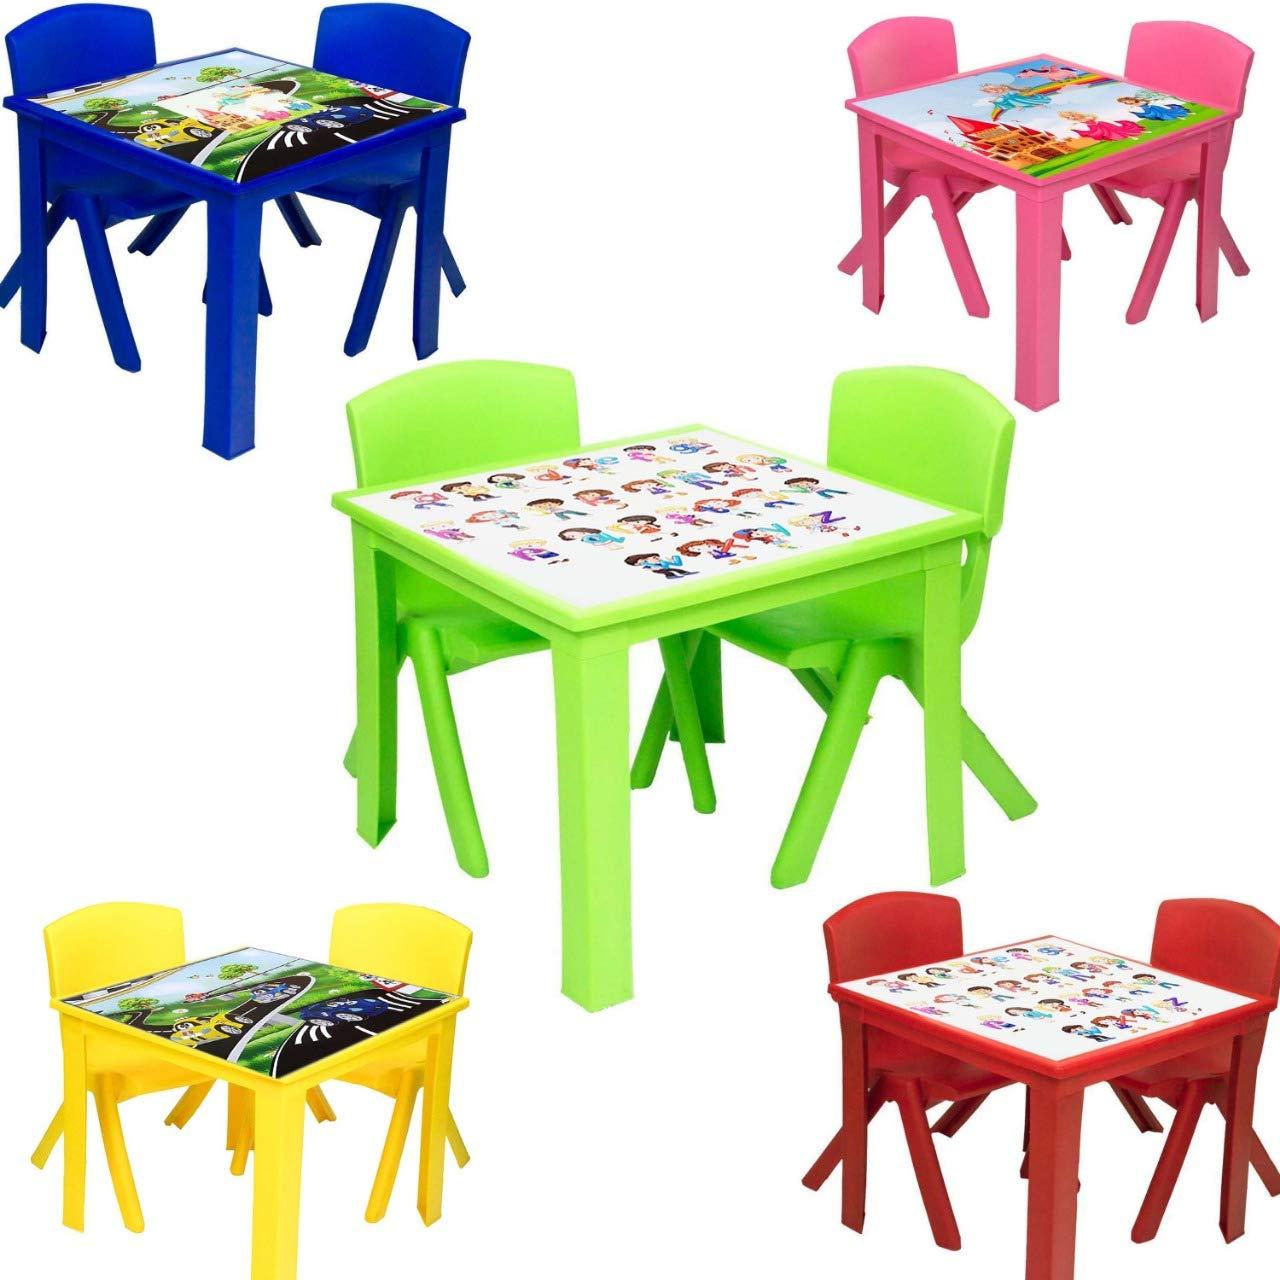 A406 Toddler Plastic Table and Chairs for Children Kids Plastic Nursery Set Outdoor indoor Blue, Table + 1 Chair